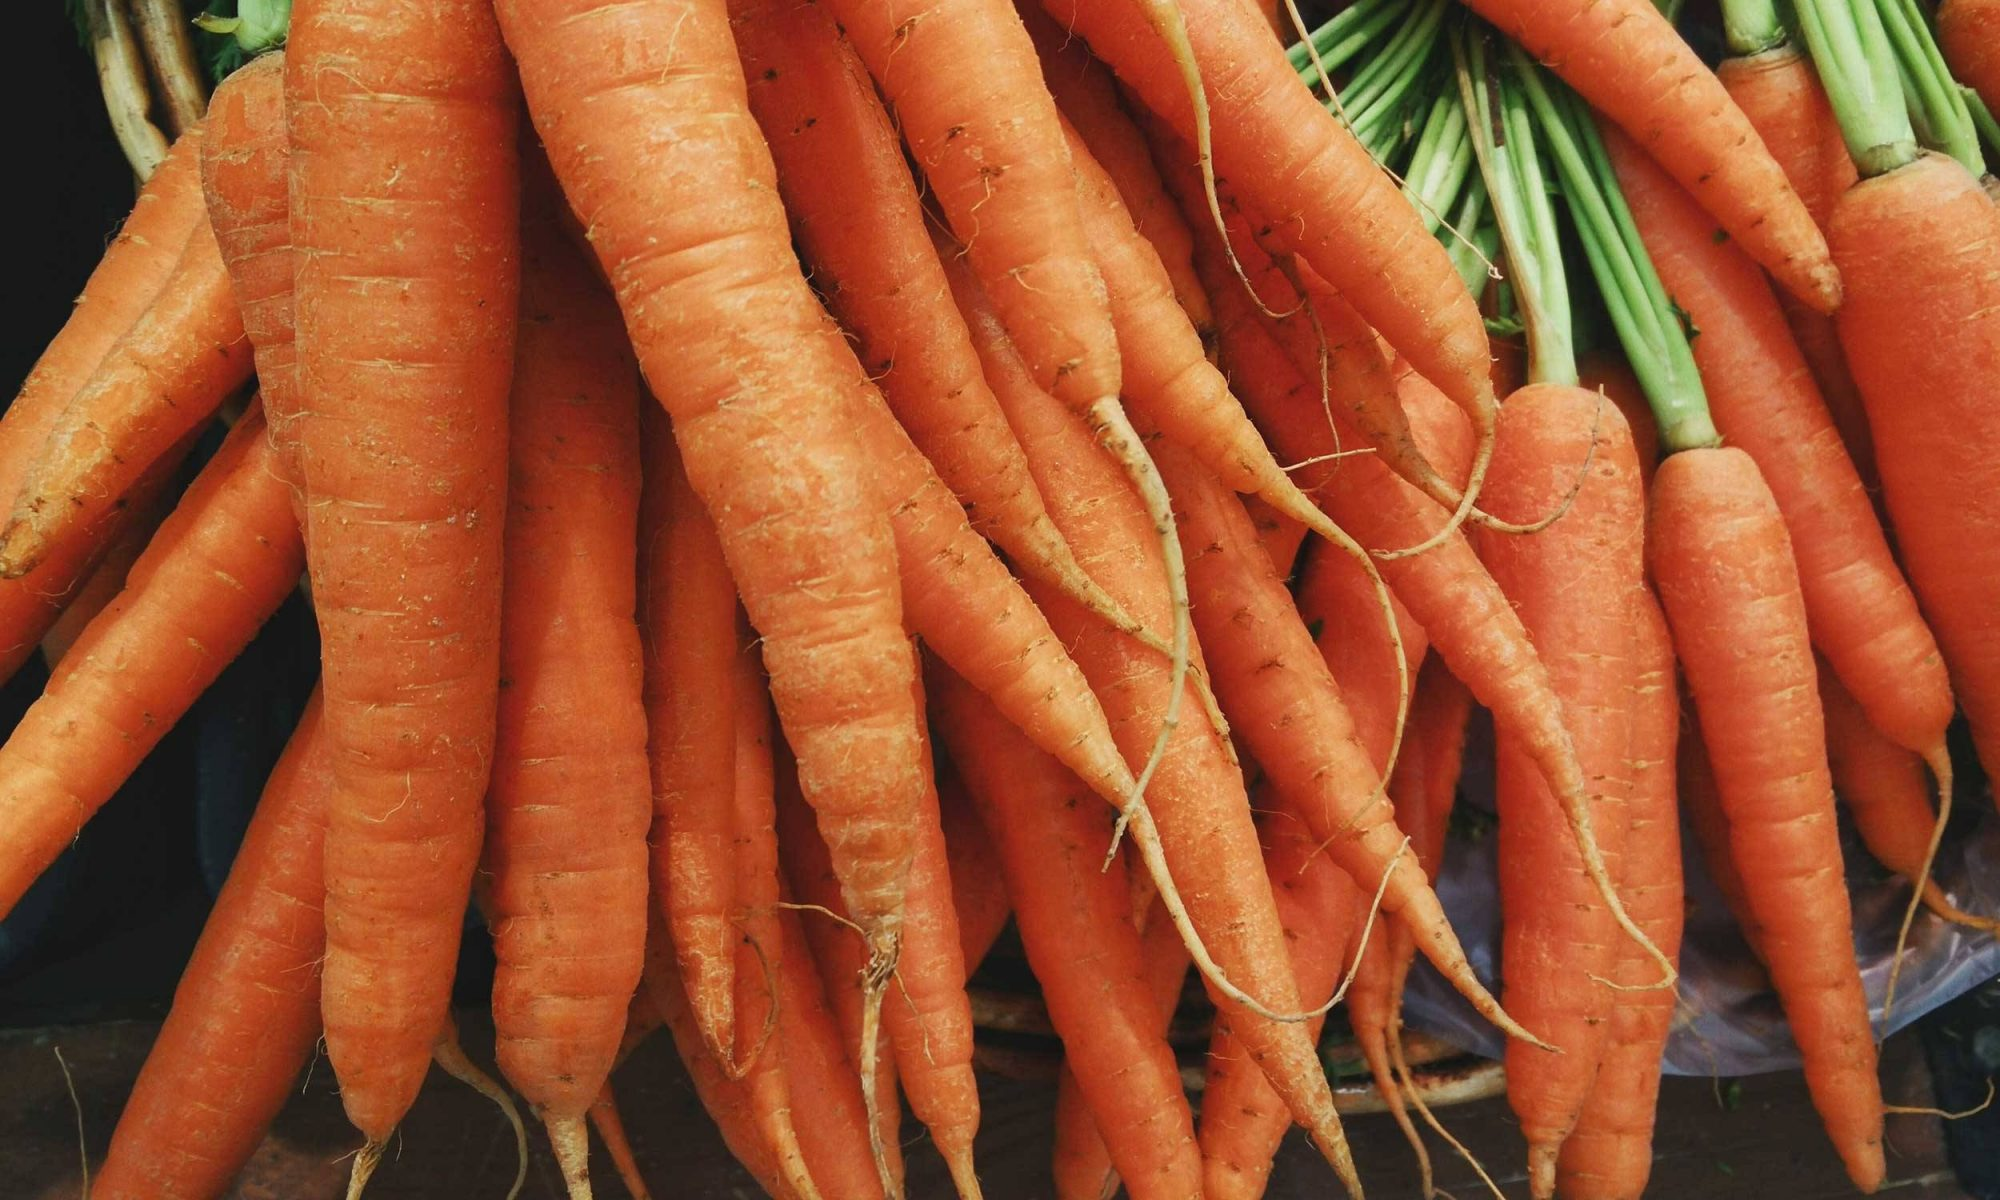 Bunch of fresh, raw carrots